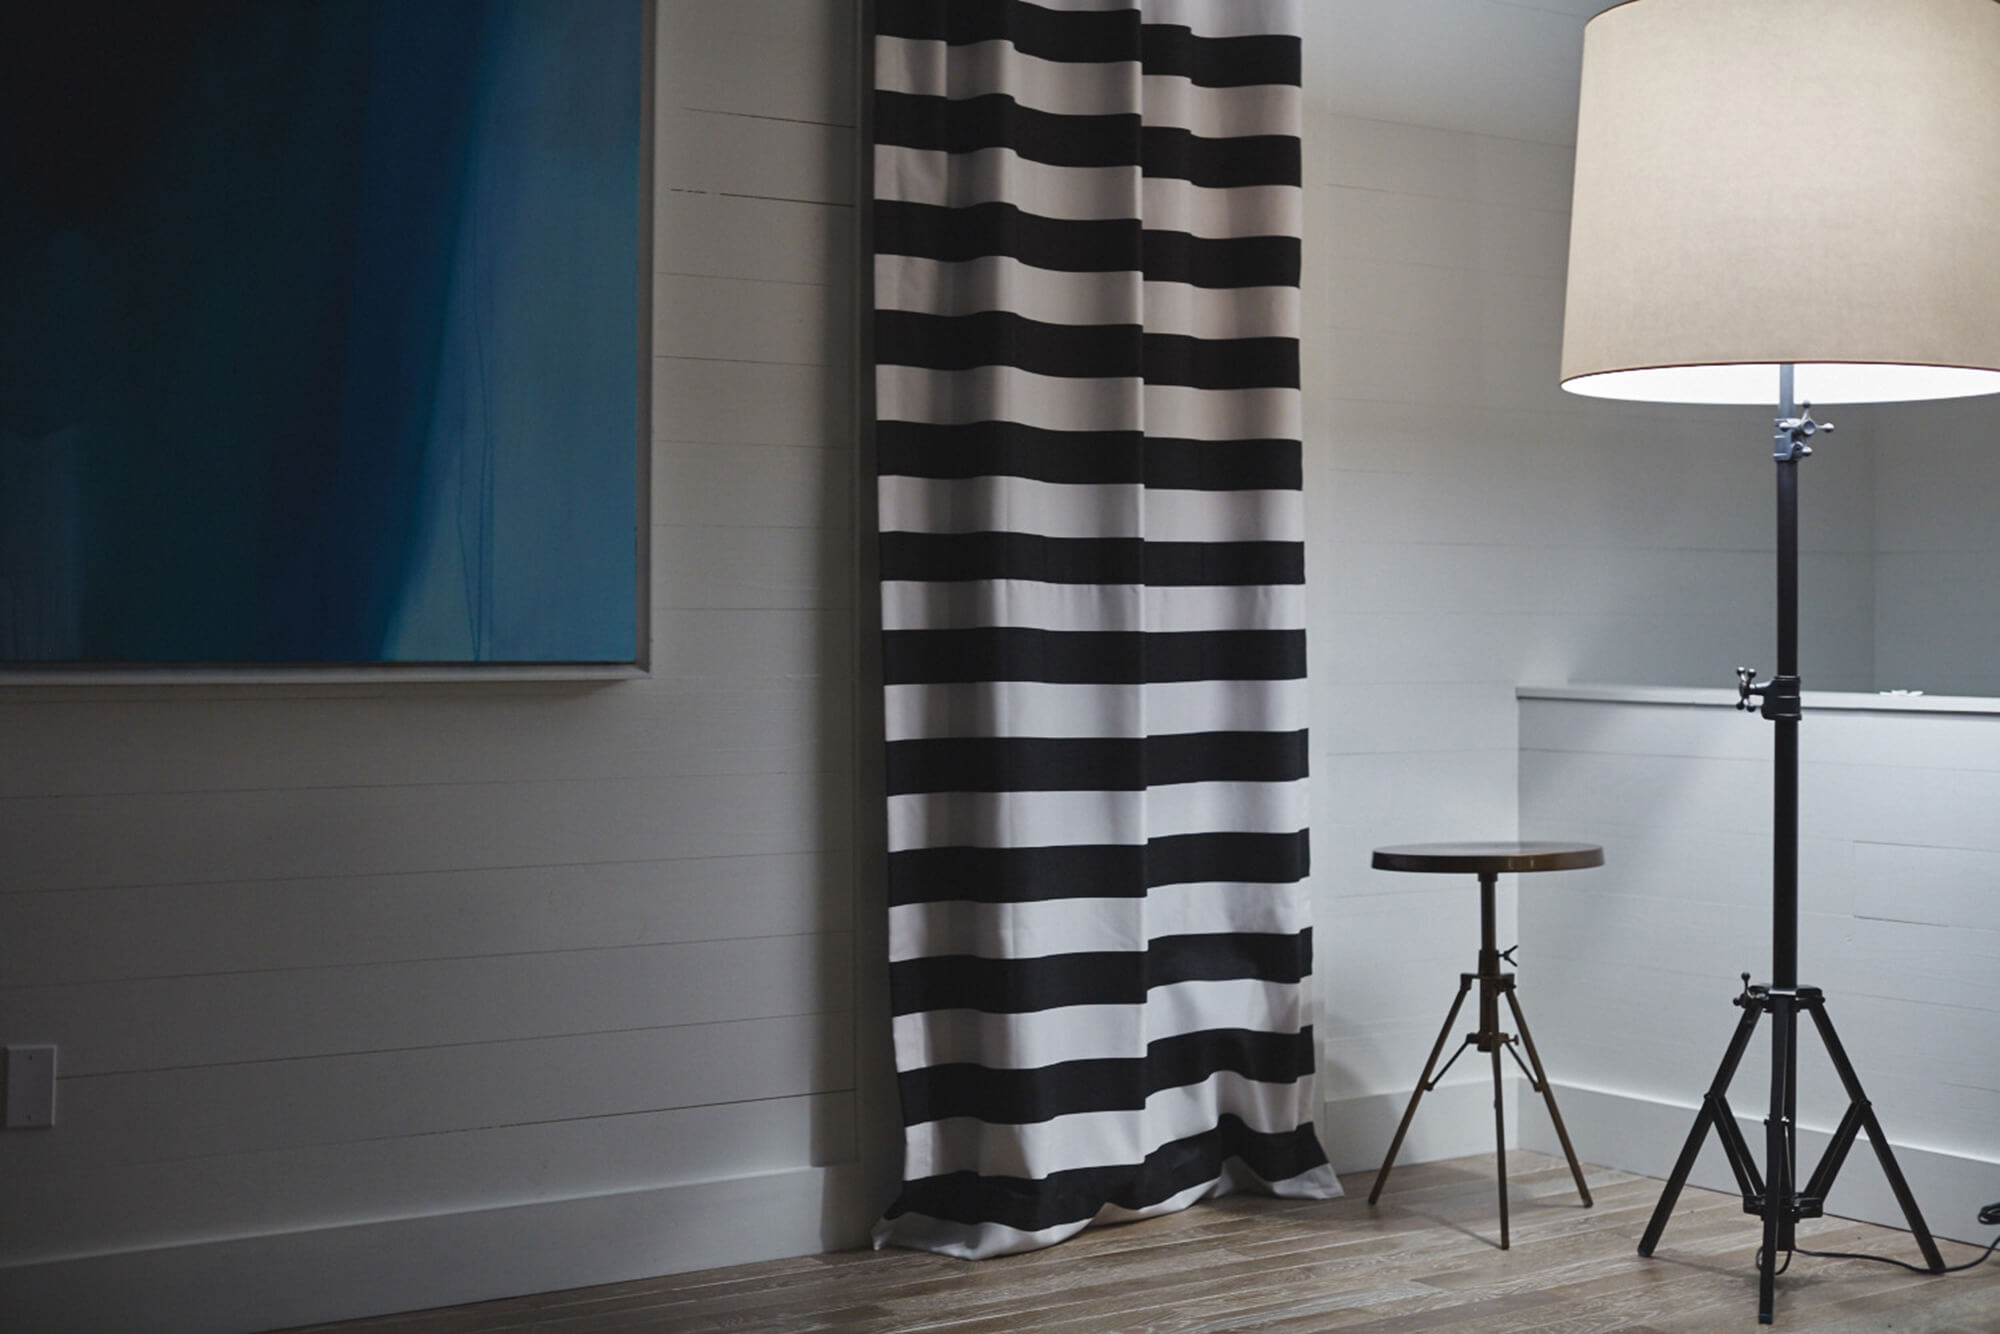 A living room gets a bold look with black and white striped drapery